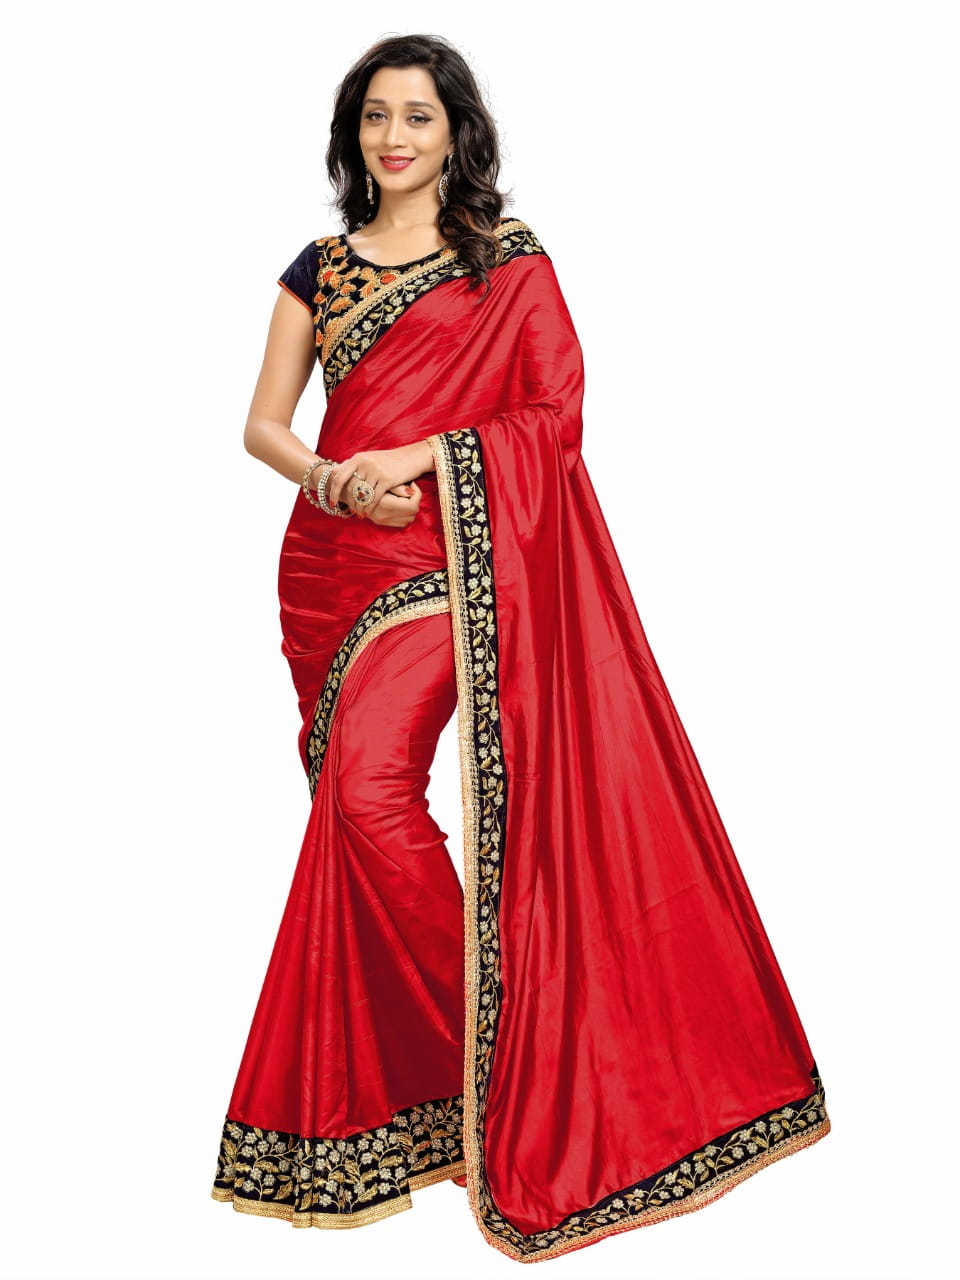 Gorgeous Red Color Designer Embroidered Work Fancy Paper Silk Saree Blouse For Wedding Wear